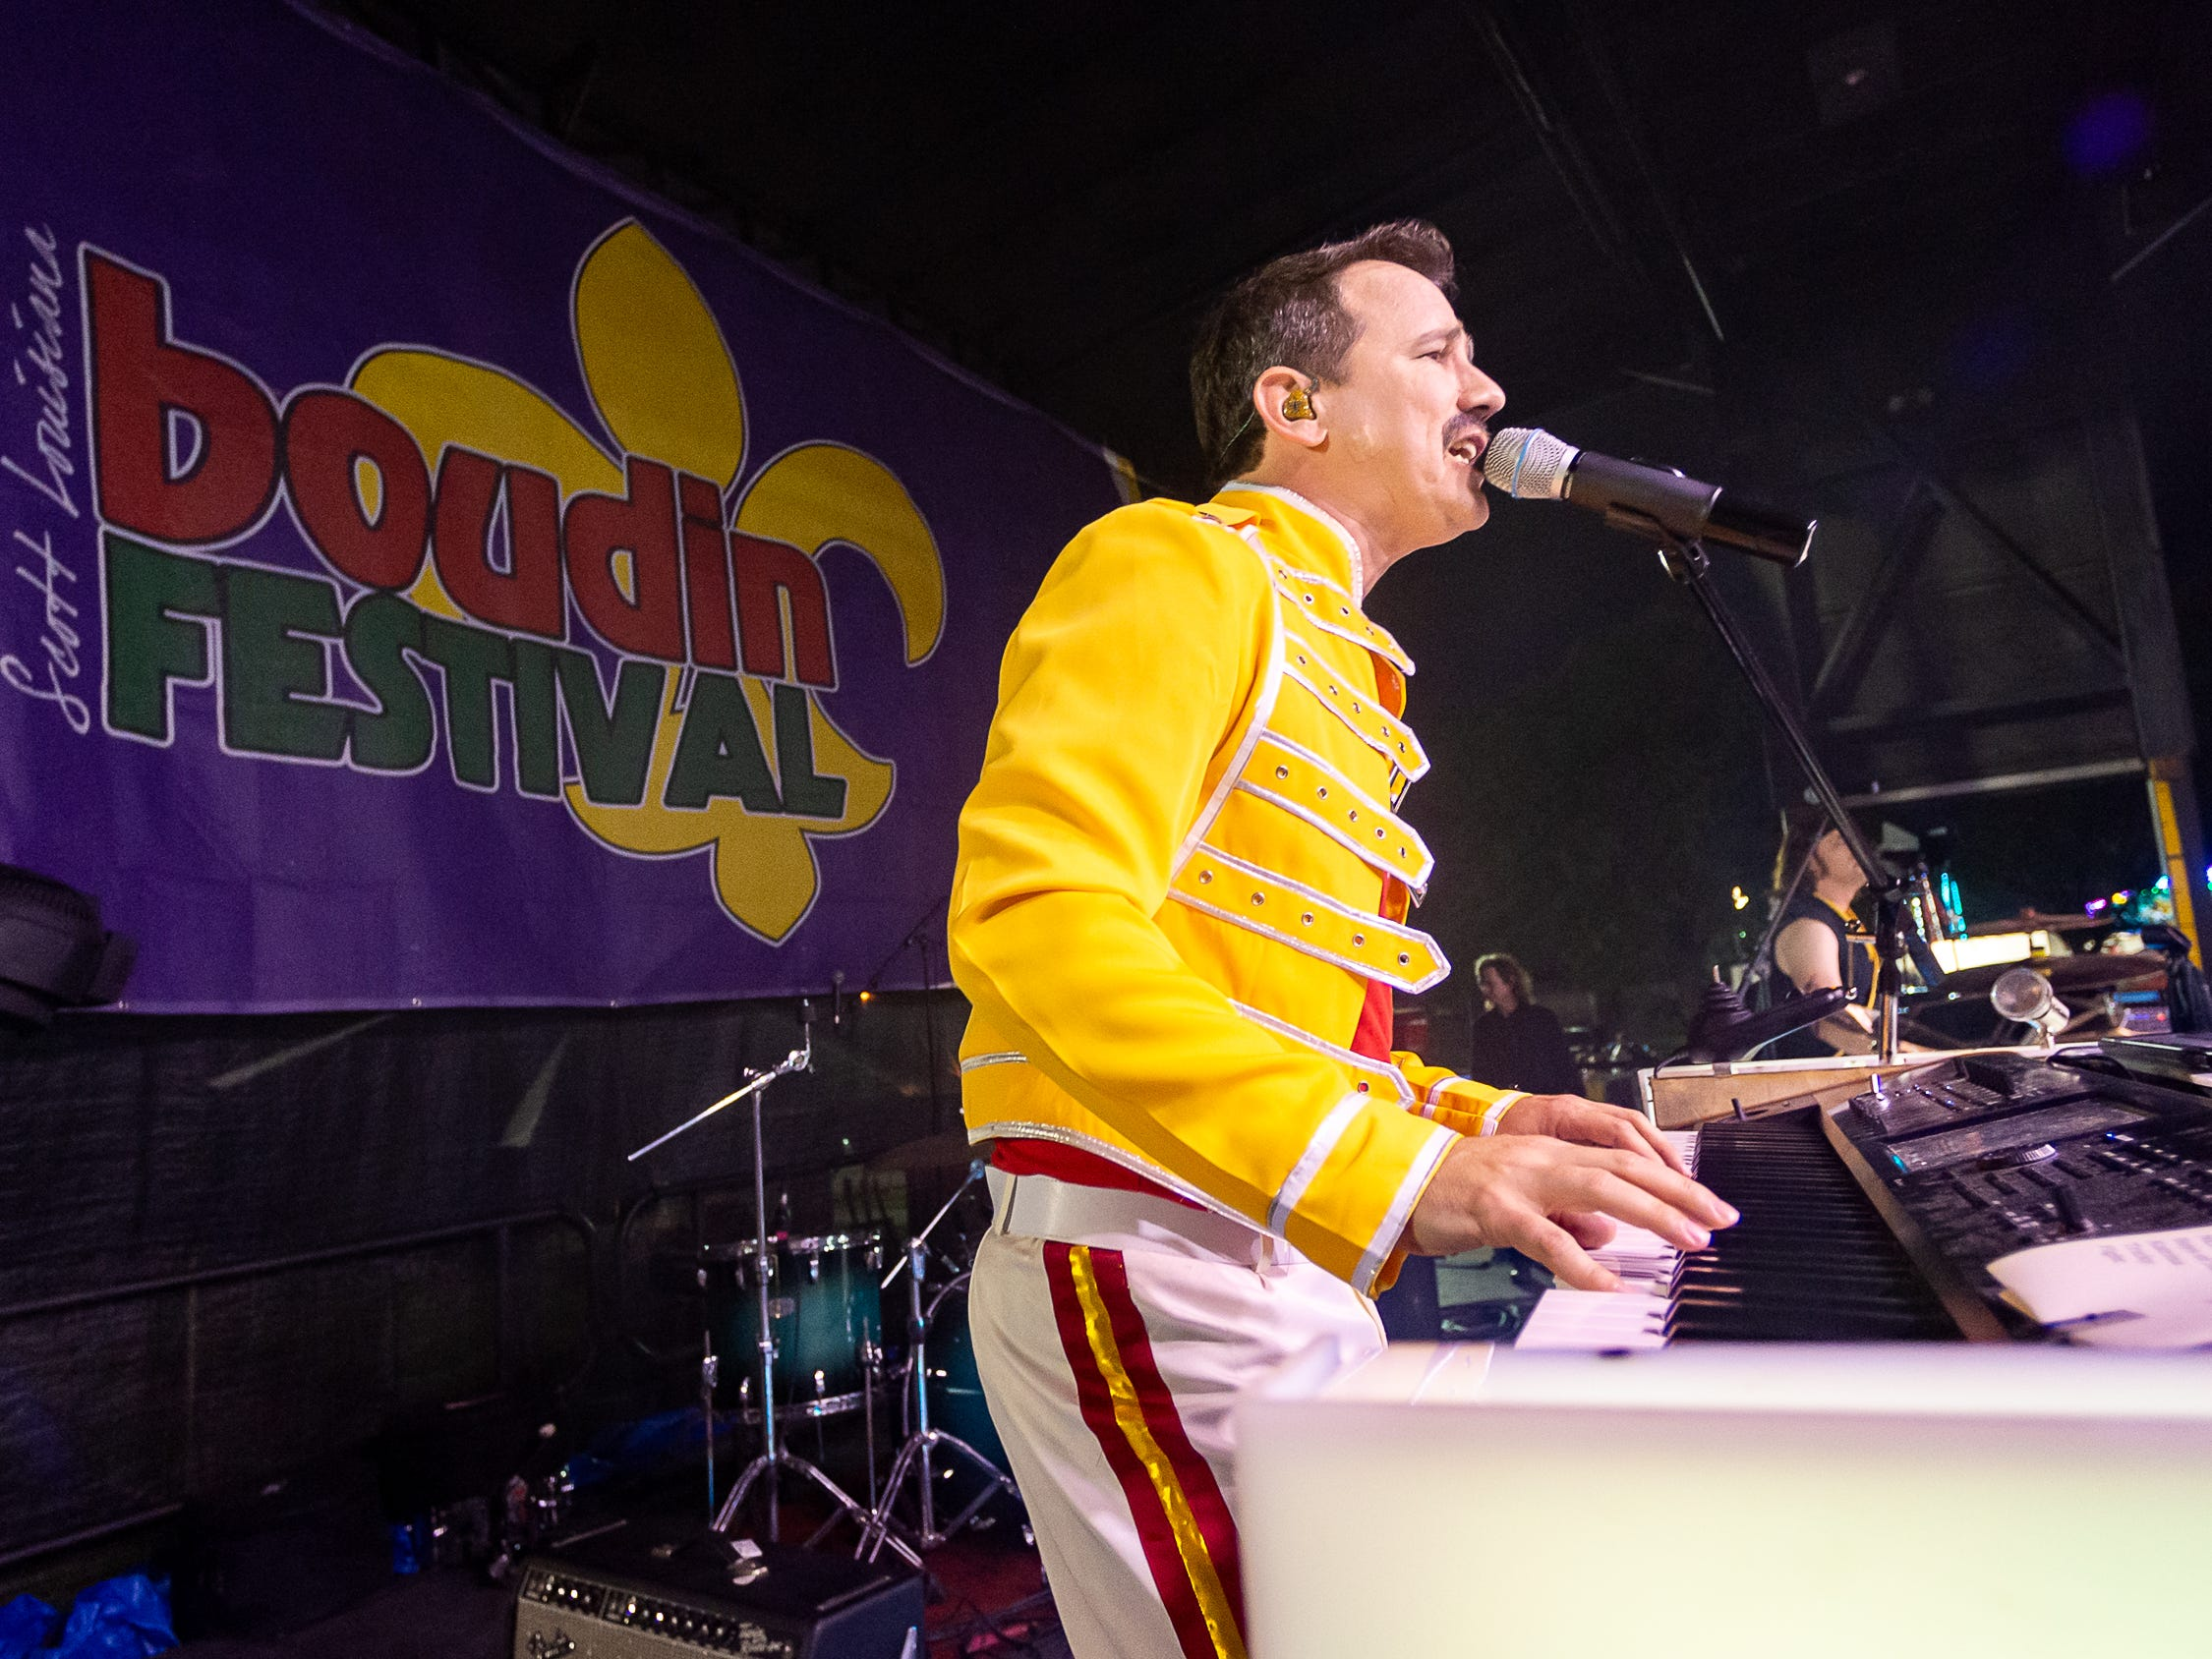 The Molly Ringwalds perform at the Scott Boudin Festival. Saturday, April 6, 2019.